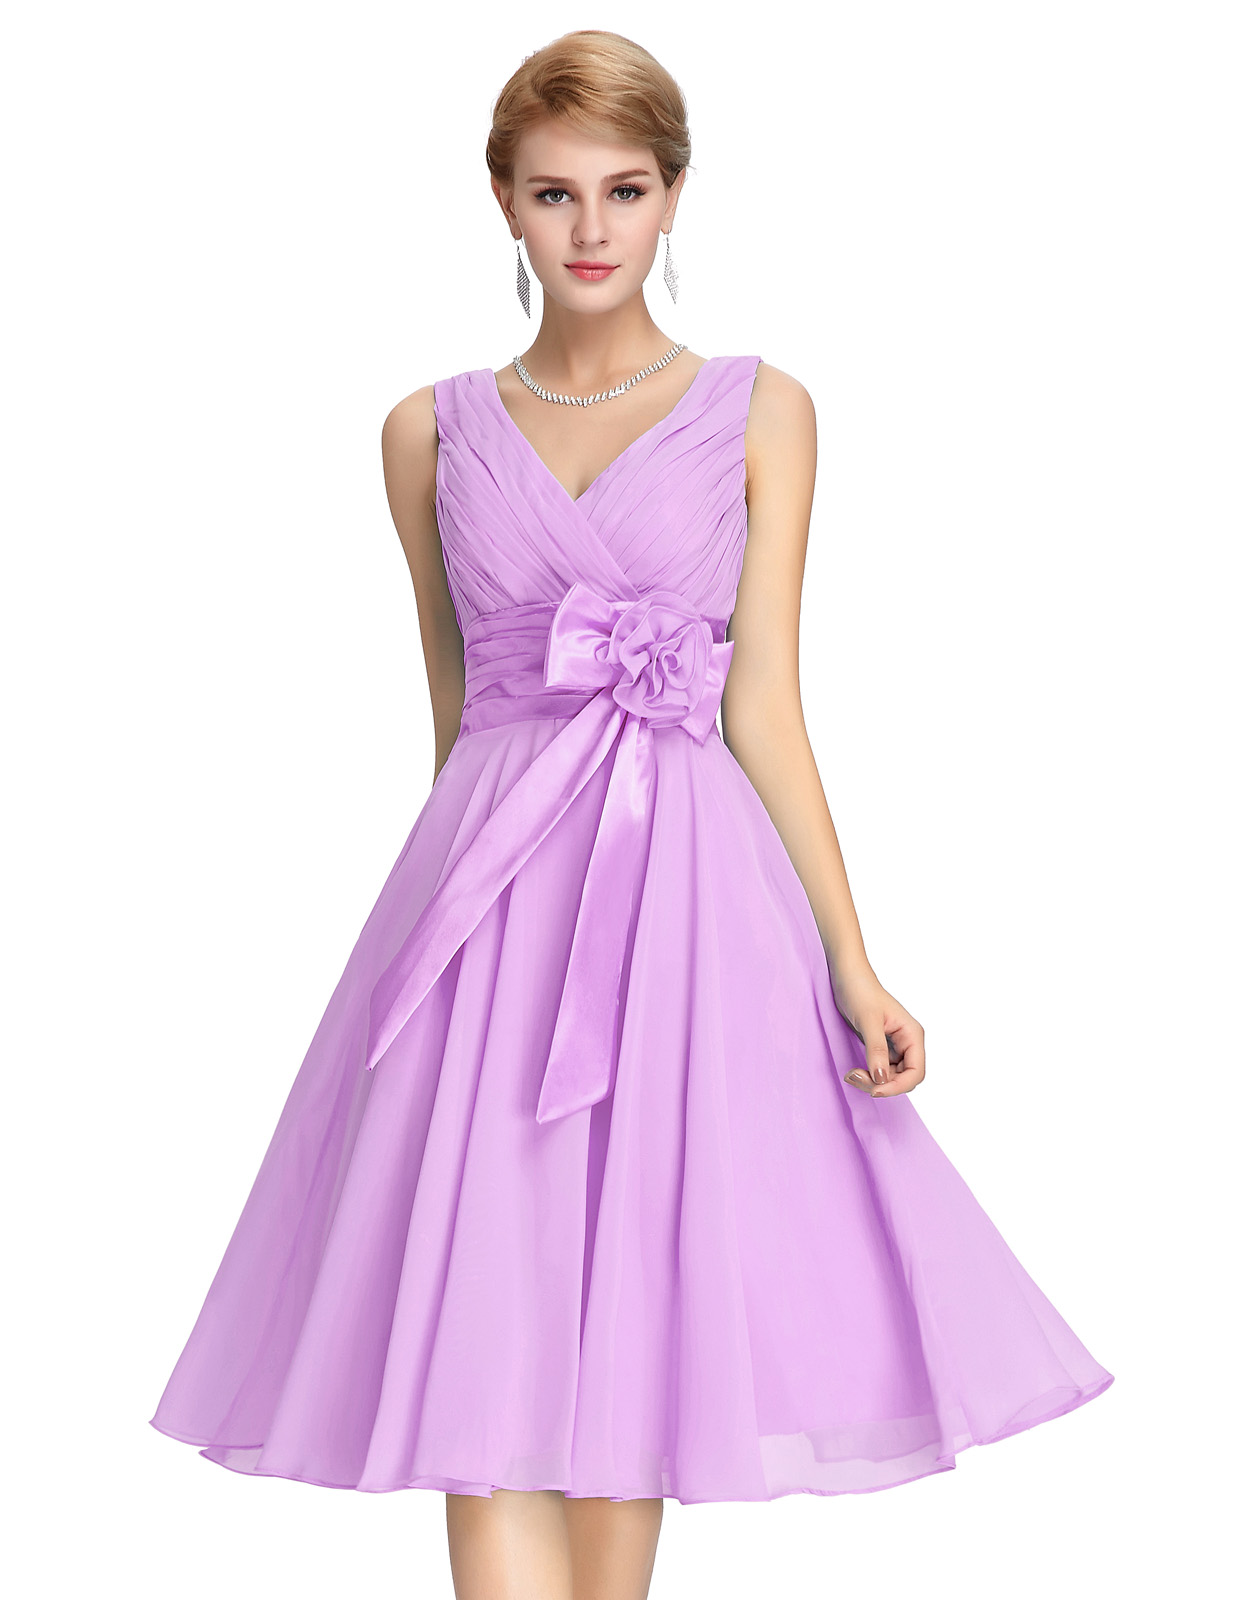 Aqua and purple bridesmaid dresses junoir bridesmaid dresses aqua and purple bridesmaid dresses 45 ombrellifo Gallery